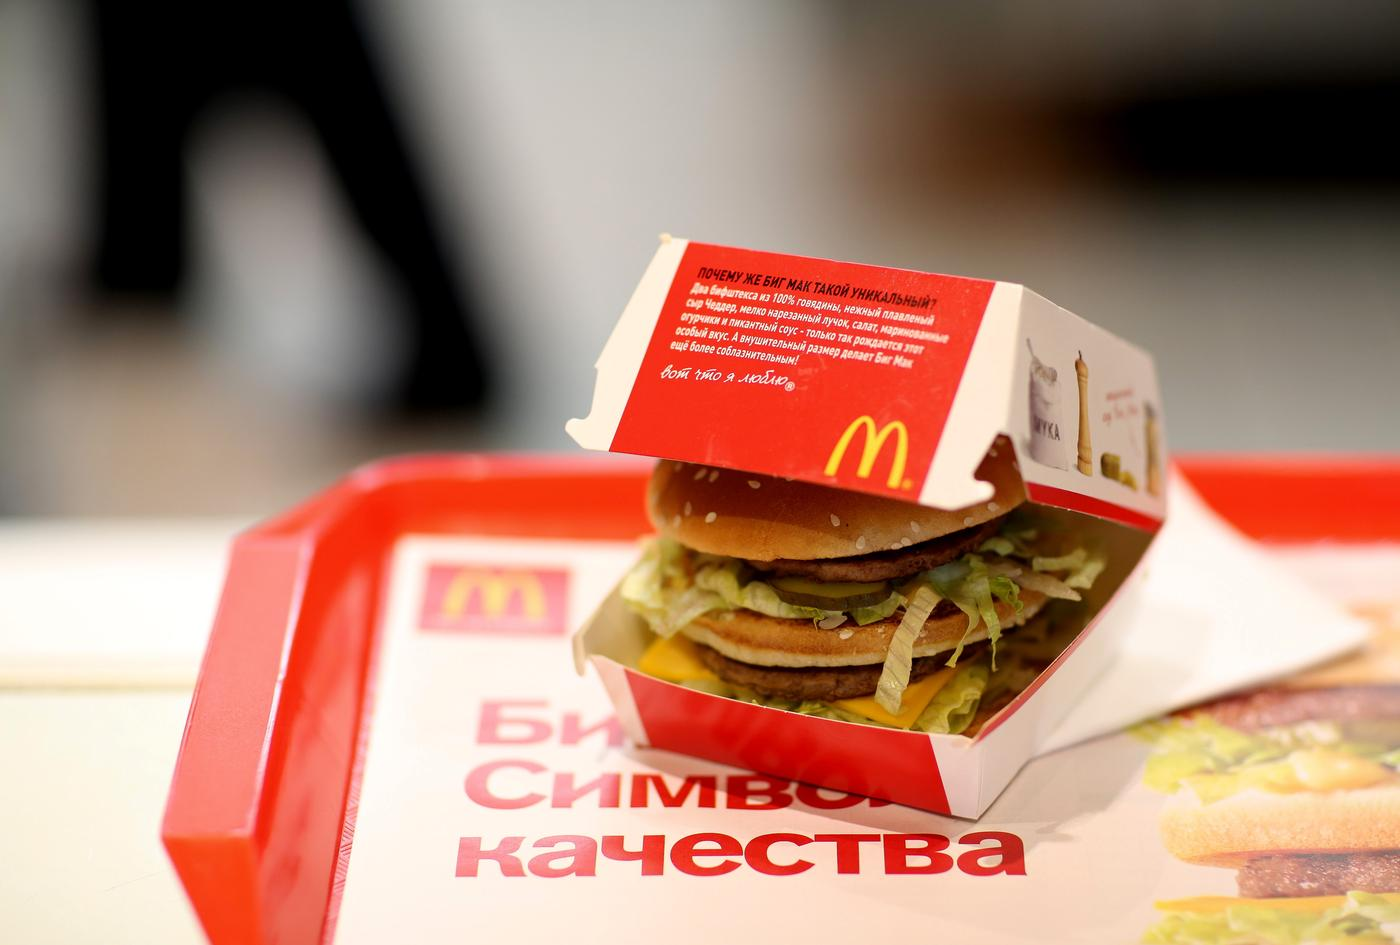 A Big Mac hamburger sits on a tray inside a McDonald's Corp. fast food restaurant in Moscow, Russia, on Tuesday, Oct. 28, 2014. More than 200 of McDonald's restaurants in Russia-or roughly half the country's total 440 locations-are now under government investigation, according to the company, and a regulator has already closed nine McDonald's outlets in recent weeks. Bloomberg/Bloomberg via Getty Images